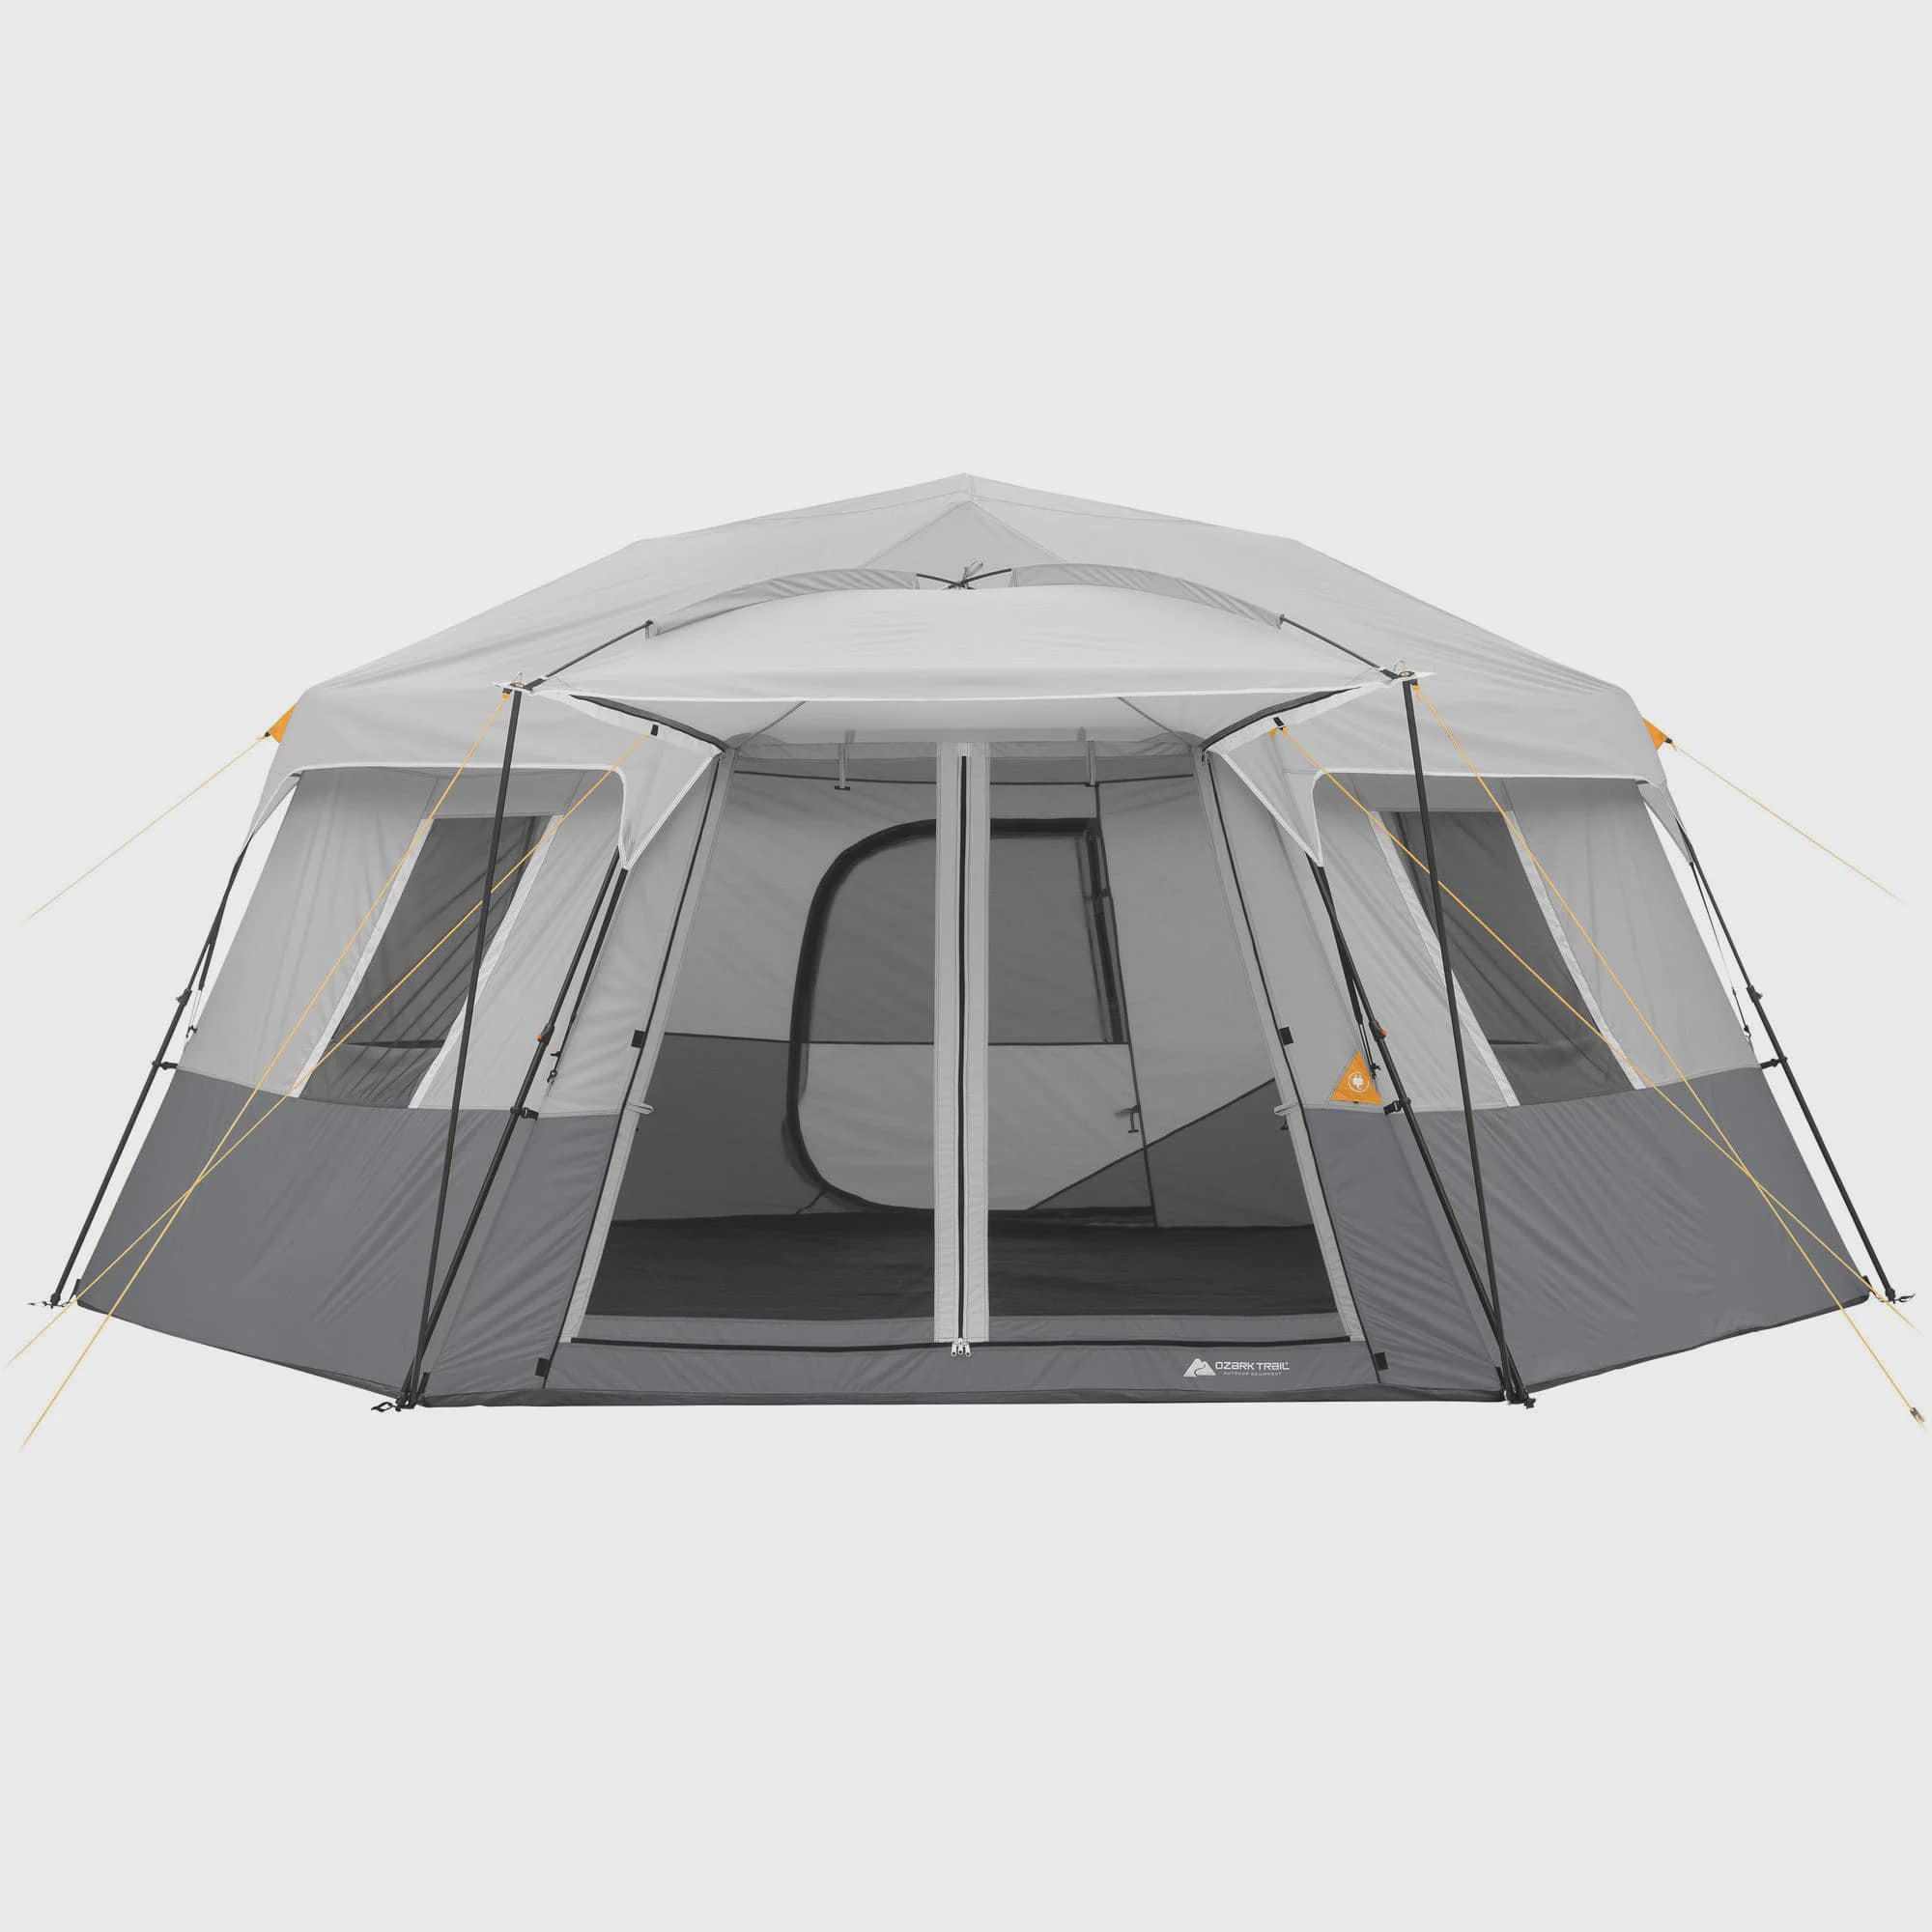 Ozark Trail 17' x 15' Person Instant Hexagon Cabin Tent, Sleeps 11 by Bohemian Travel Gear Limited